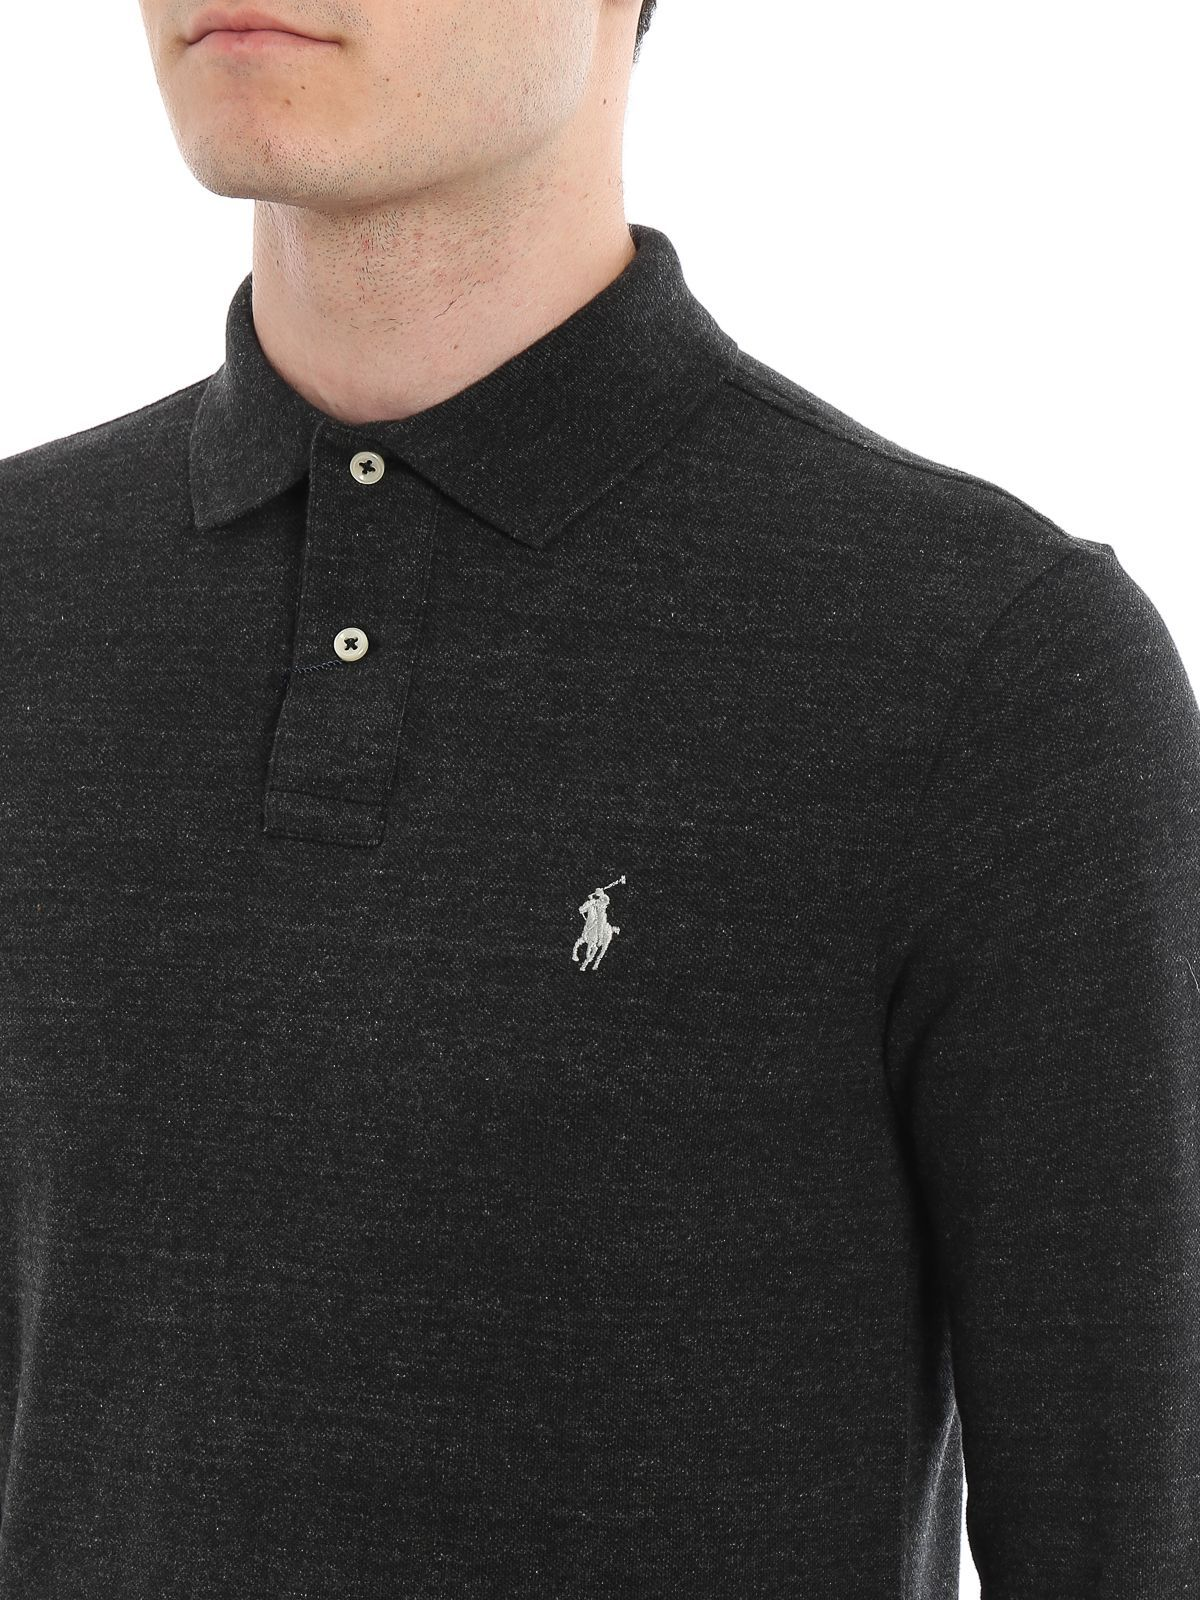 RALPH LAUREN MEN'S 710681126009 GREY COTTON POLO SHIRT